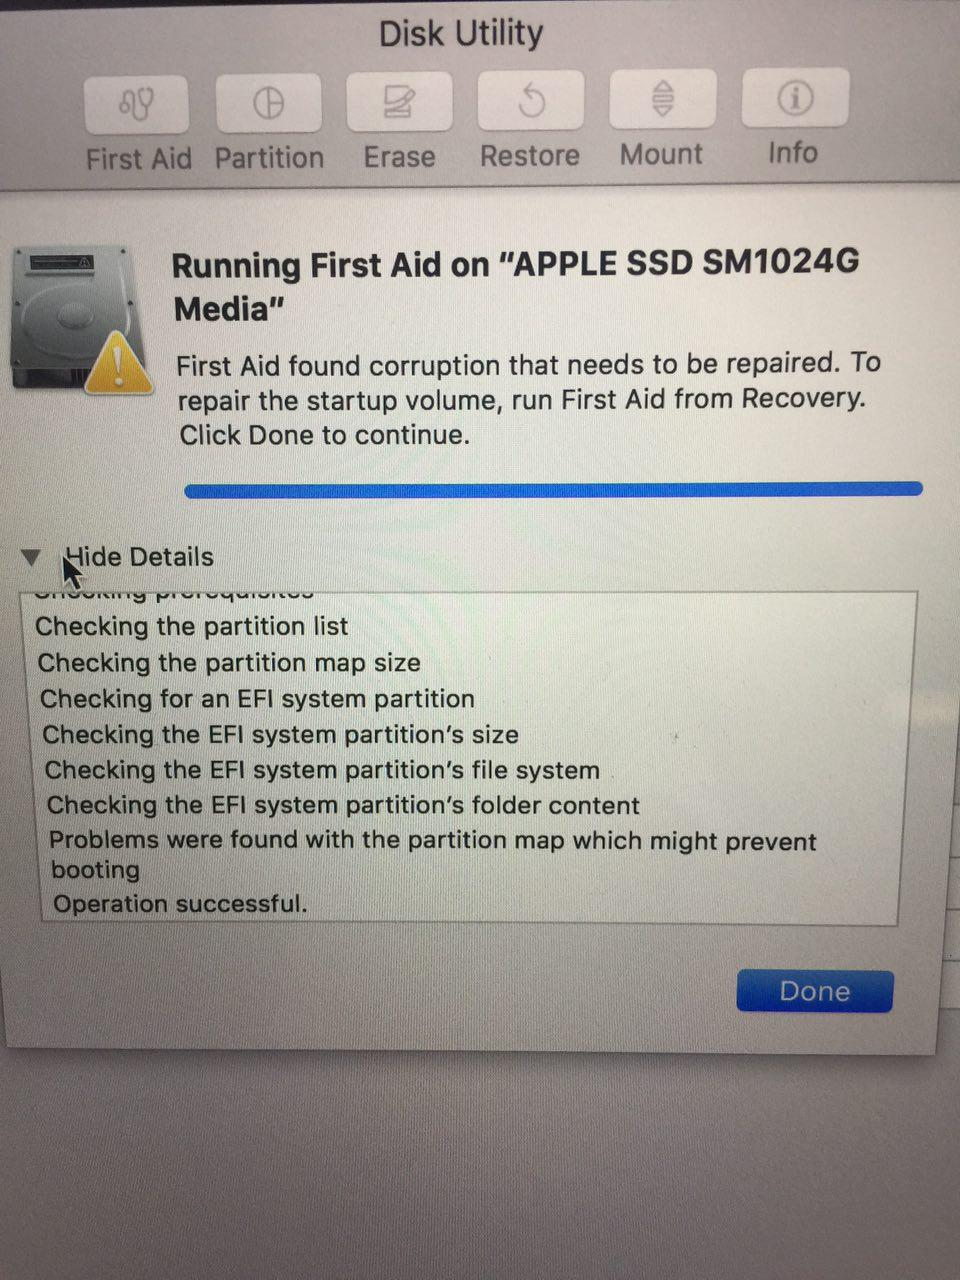 Apple macbook run first aid from recovery | how do i run